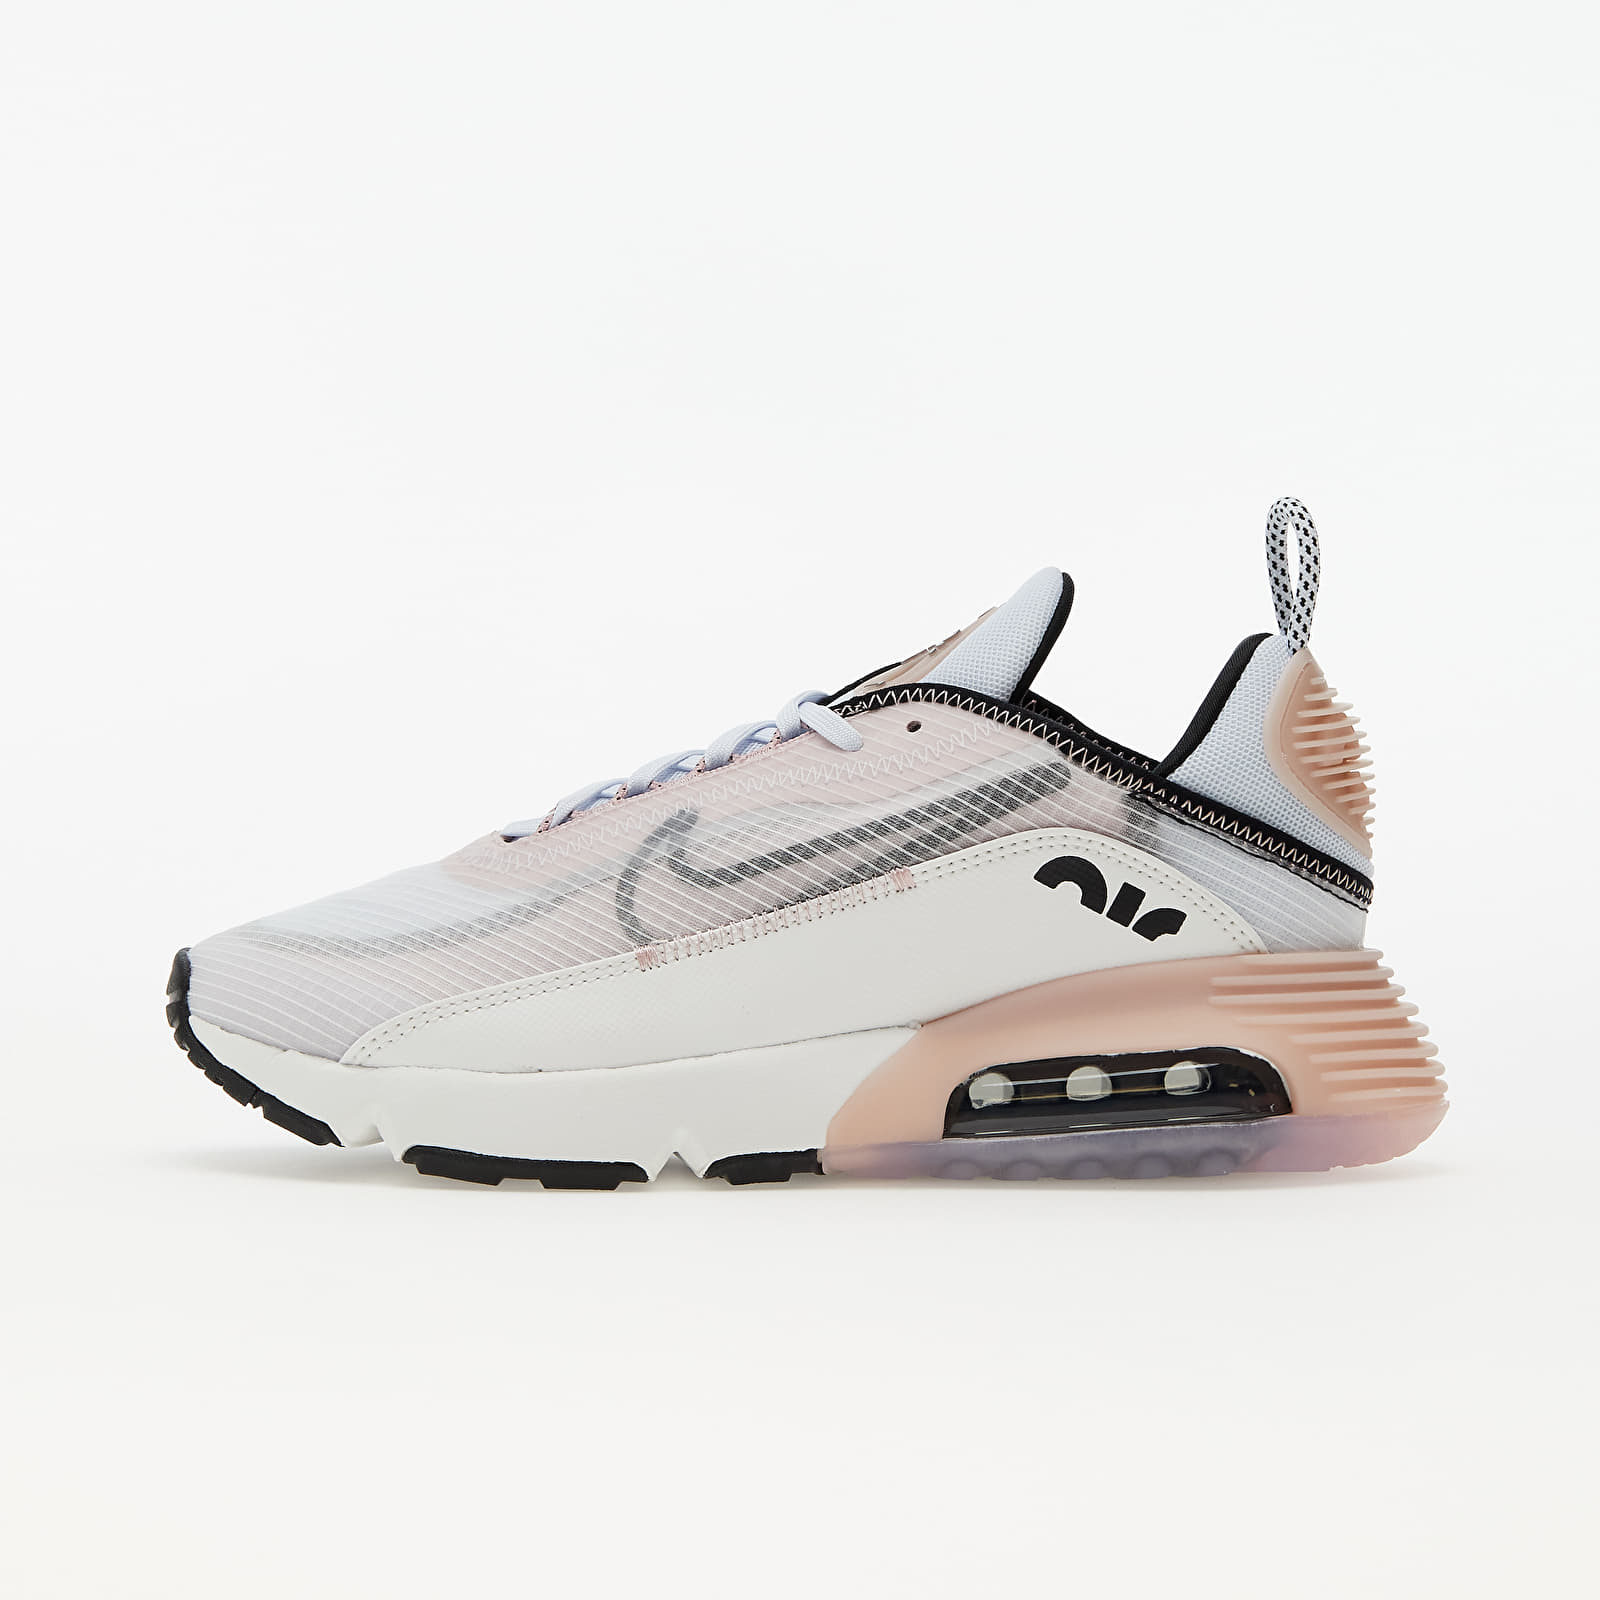 Nike W Air Max 2090 Summit White/ Black-Champagne EUR 35.5